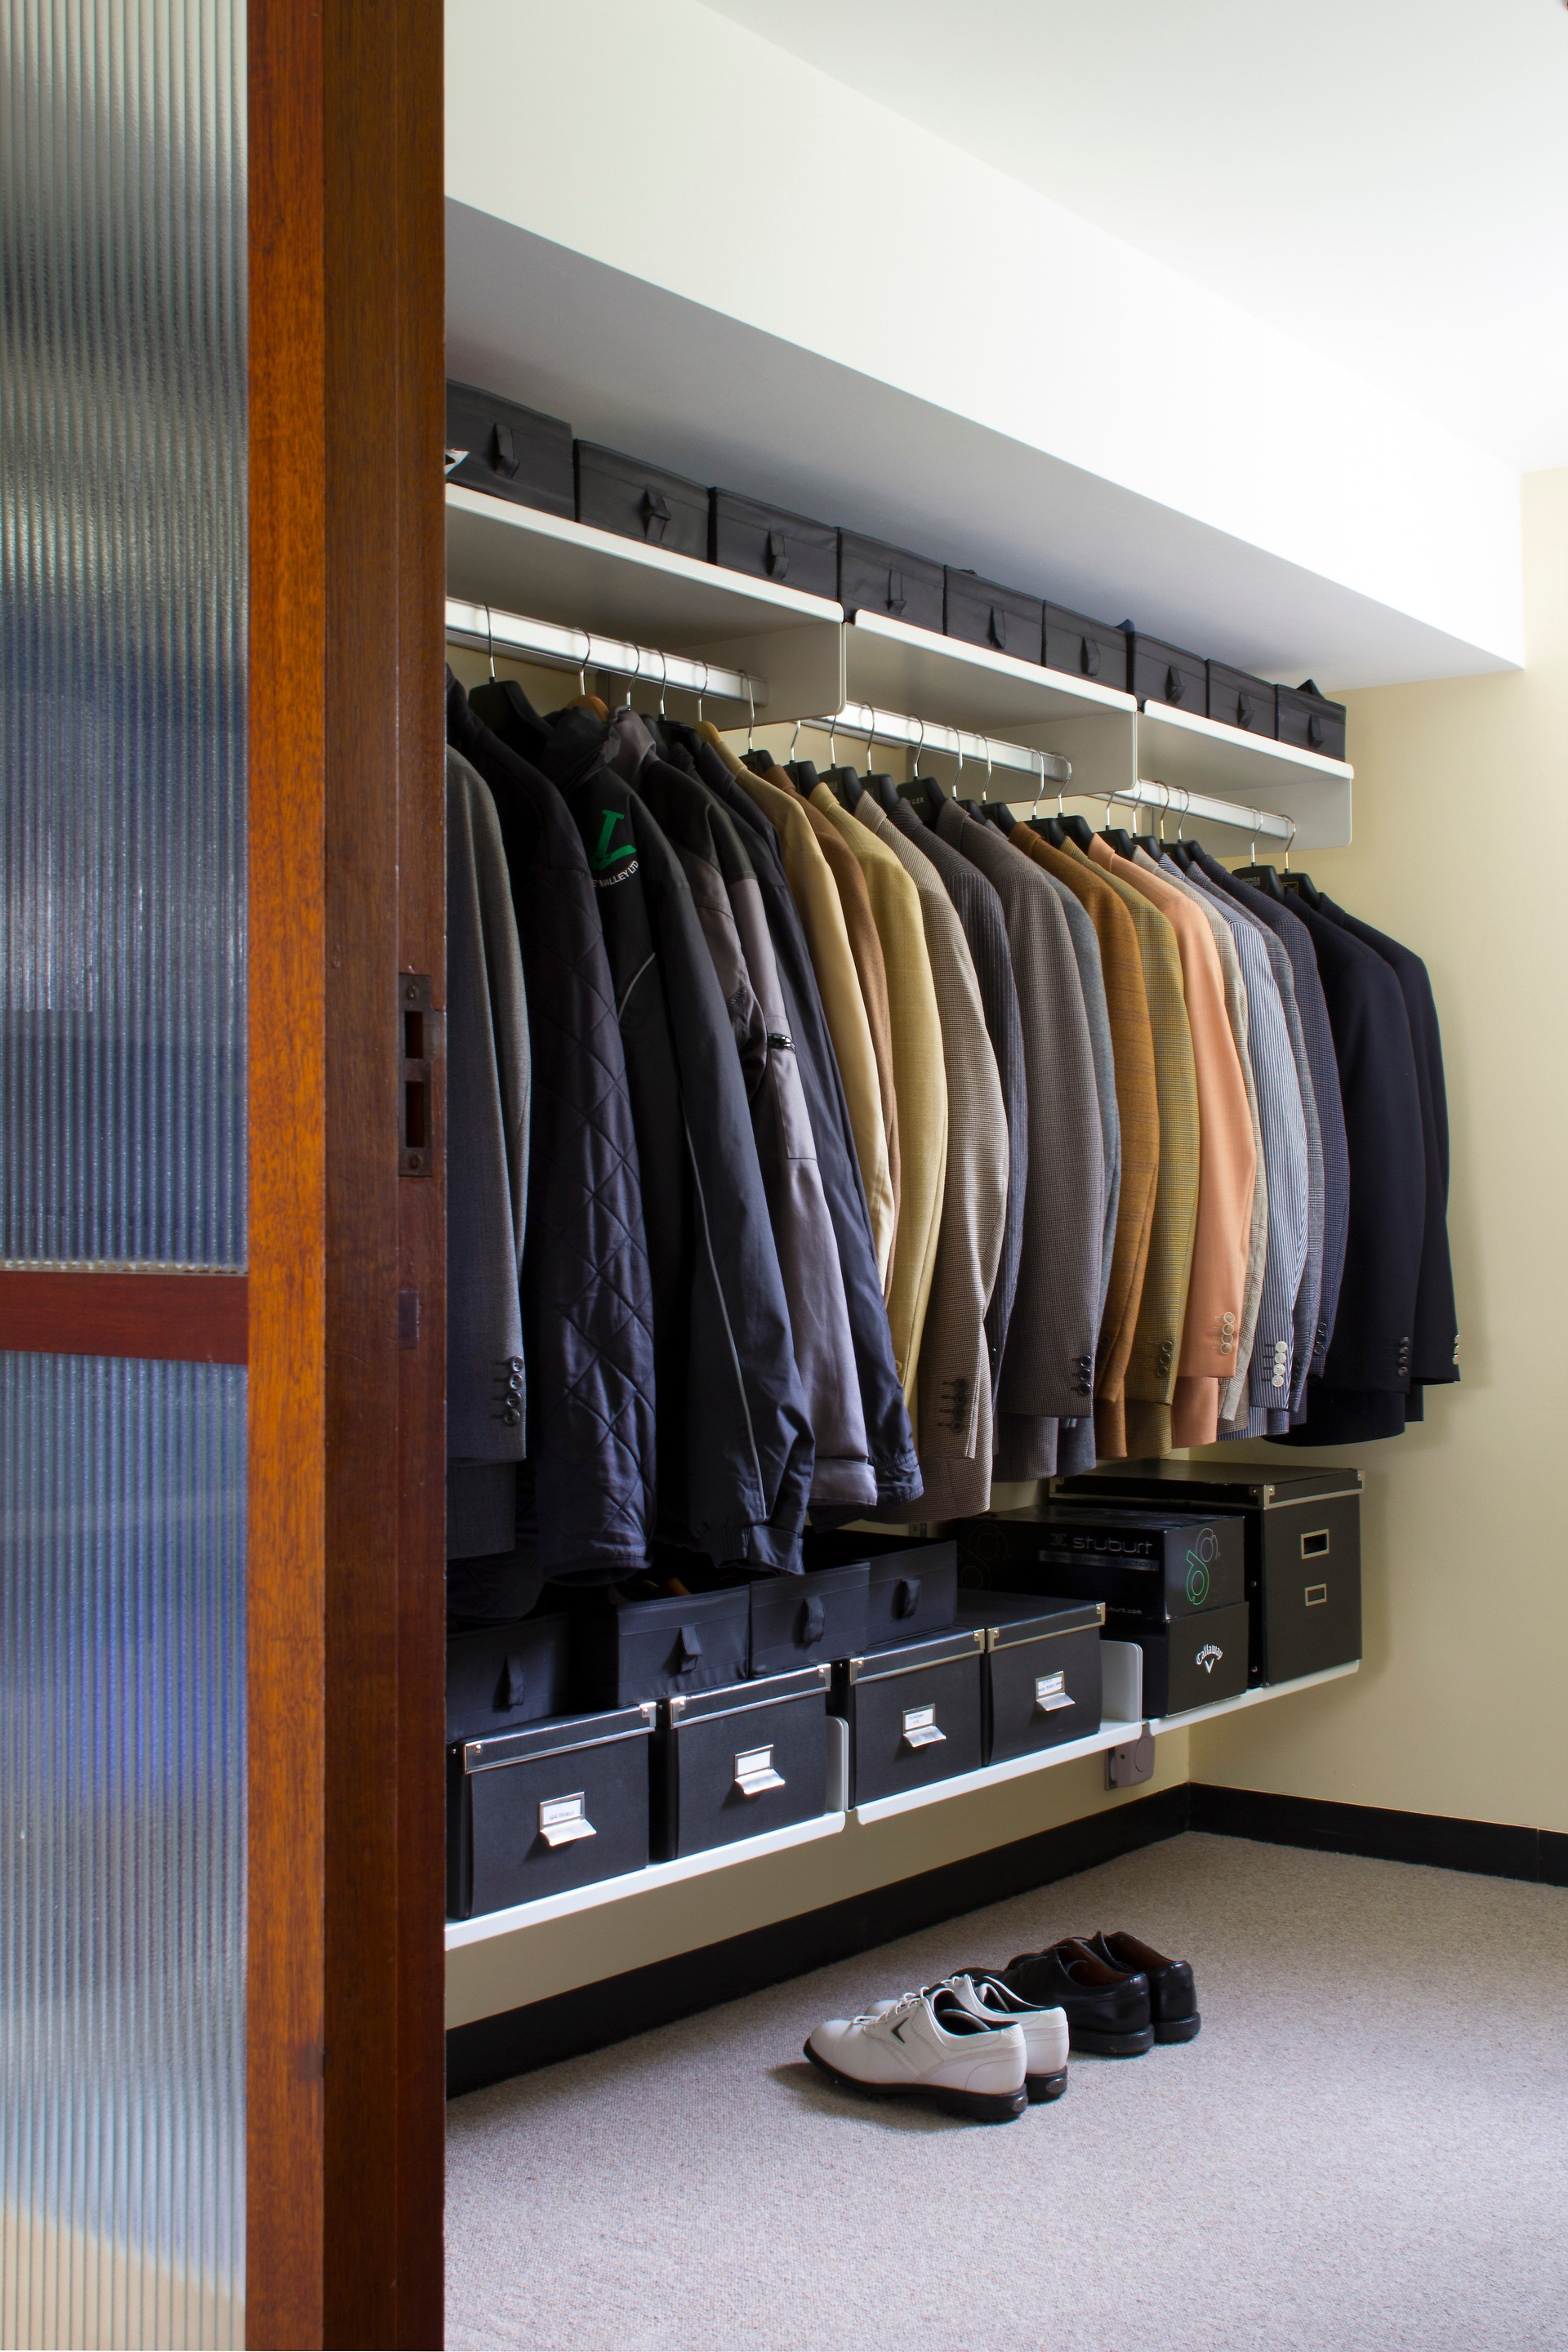 The 606 Universal Shelving System is often used for walk-in wardrobes. Here boxes are used to tidy smaller items away